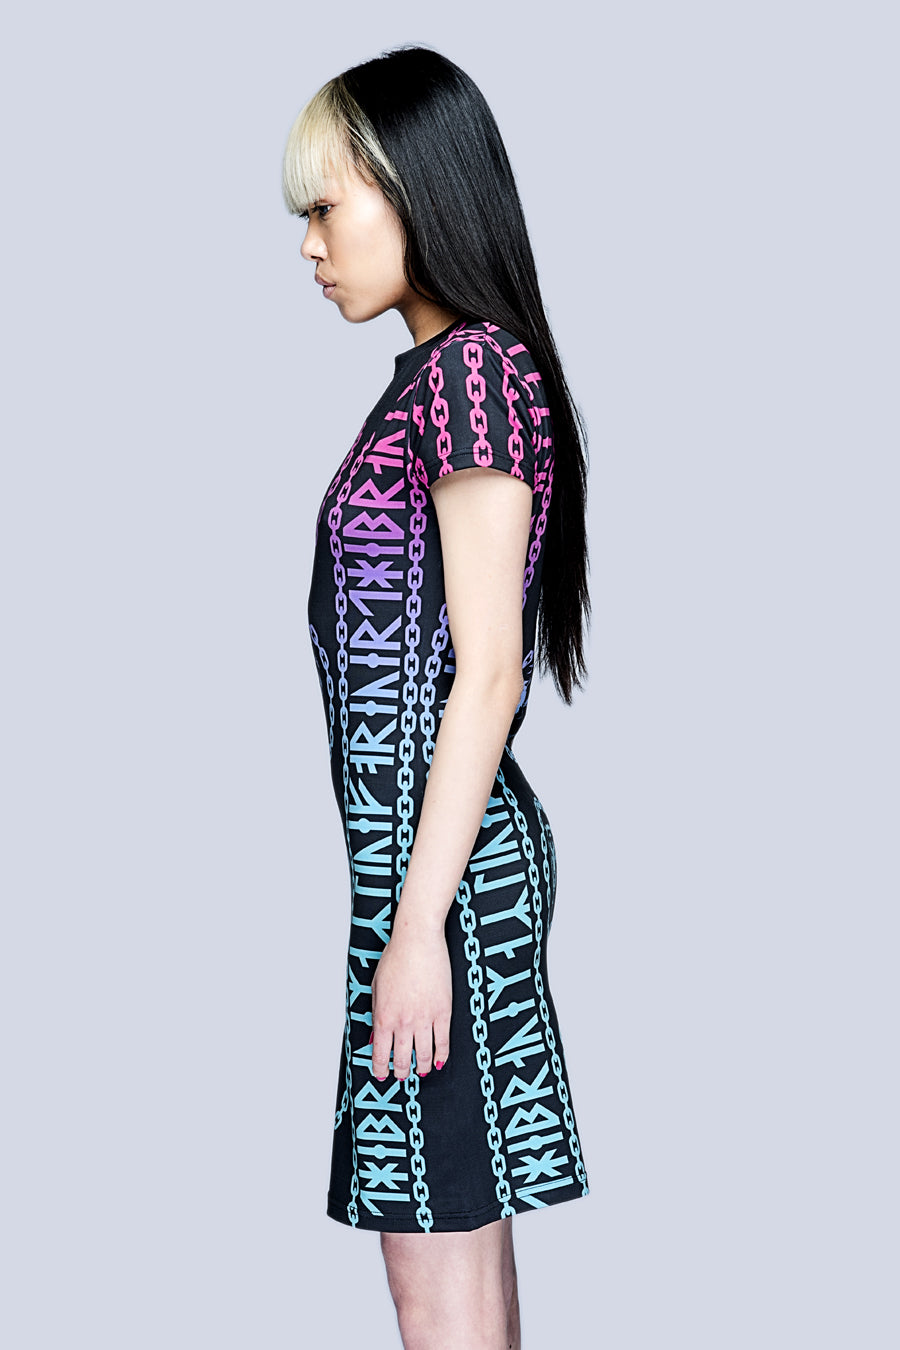 Mishka 2.0 Death Adder Chain Dress-3367